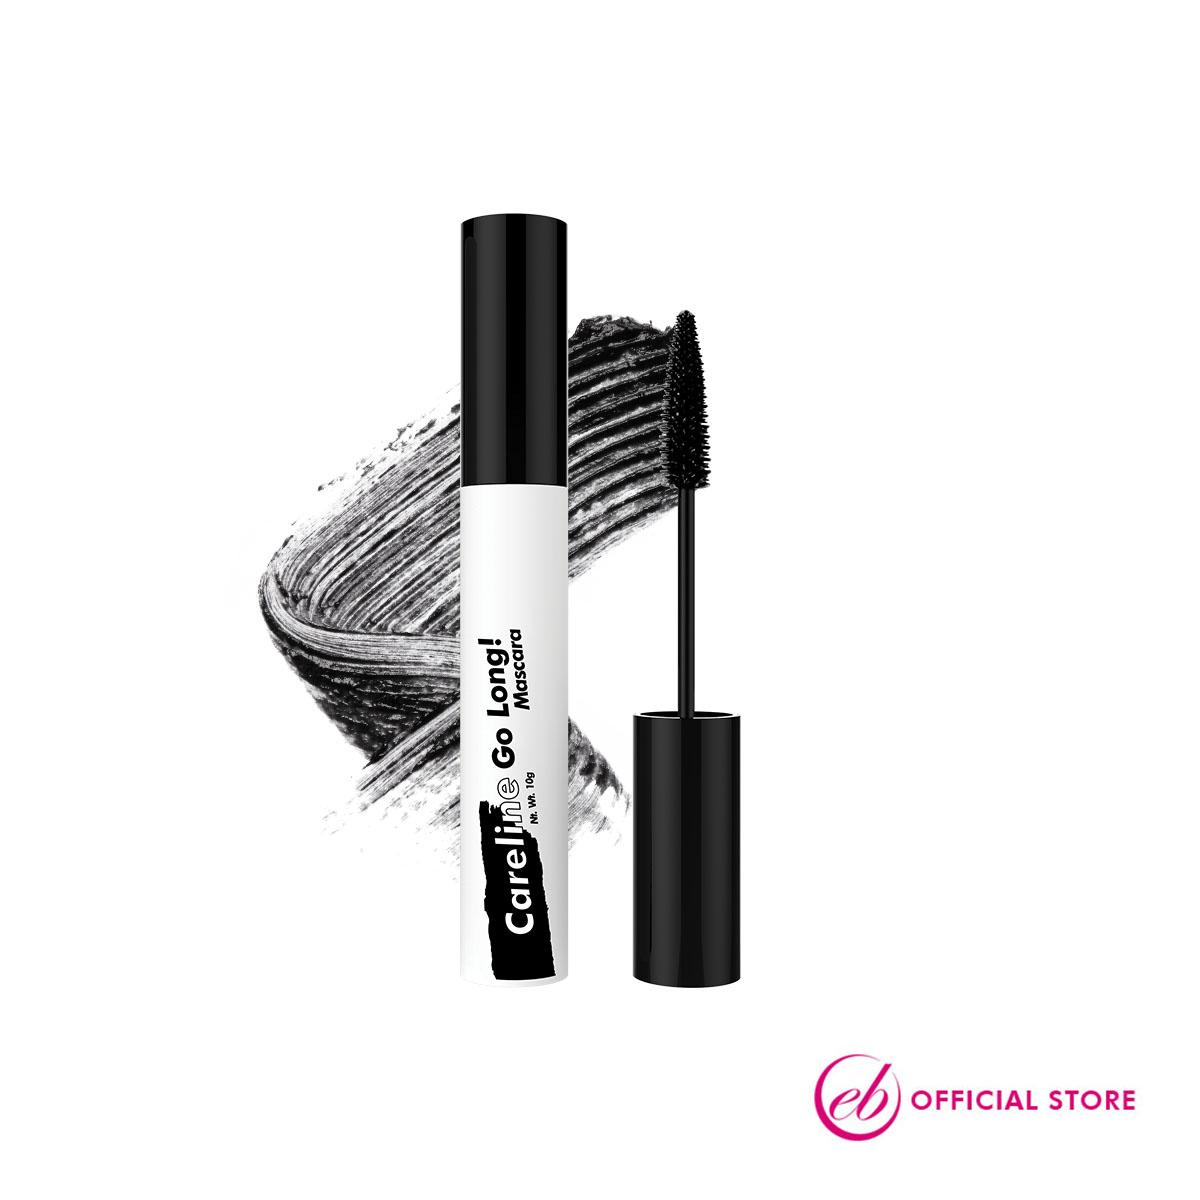 Careline Go Long Mascara Philippines